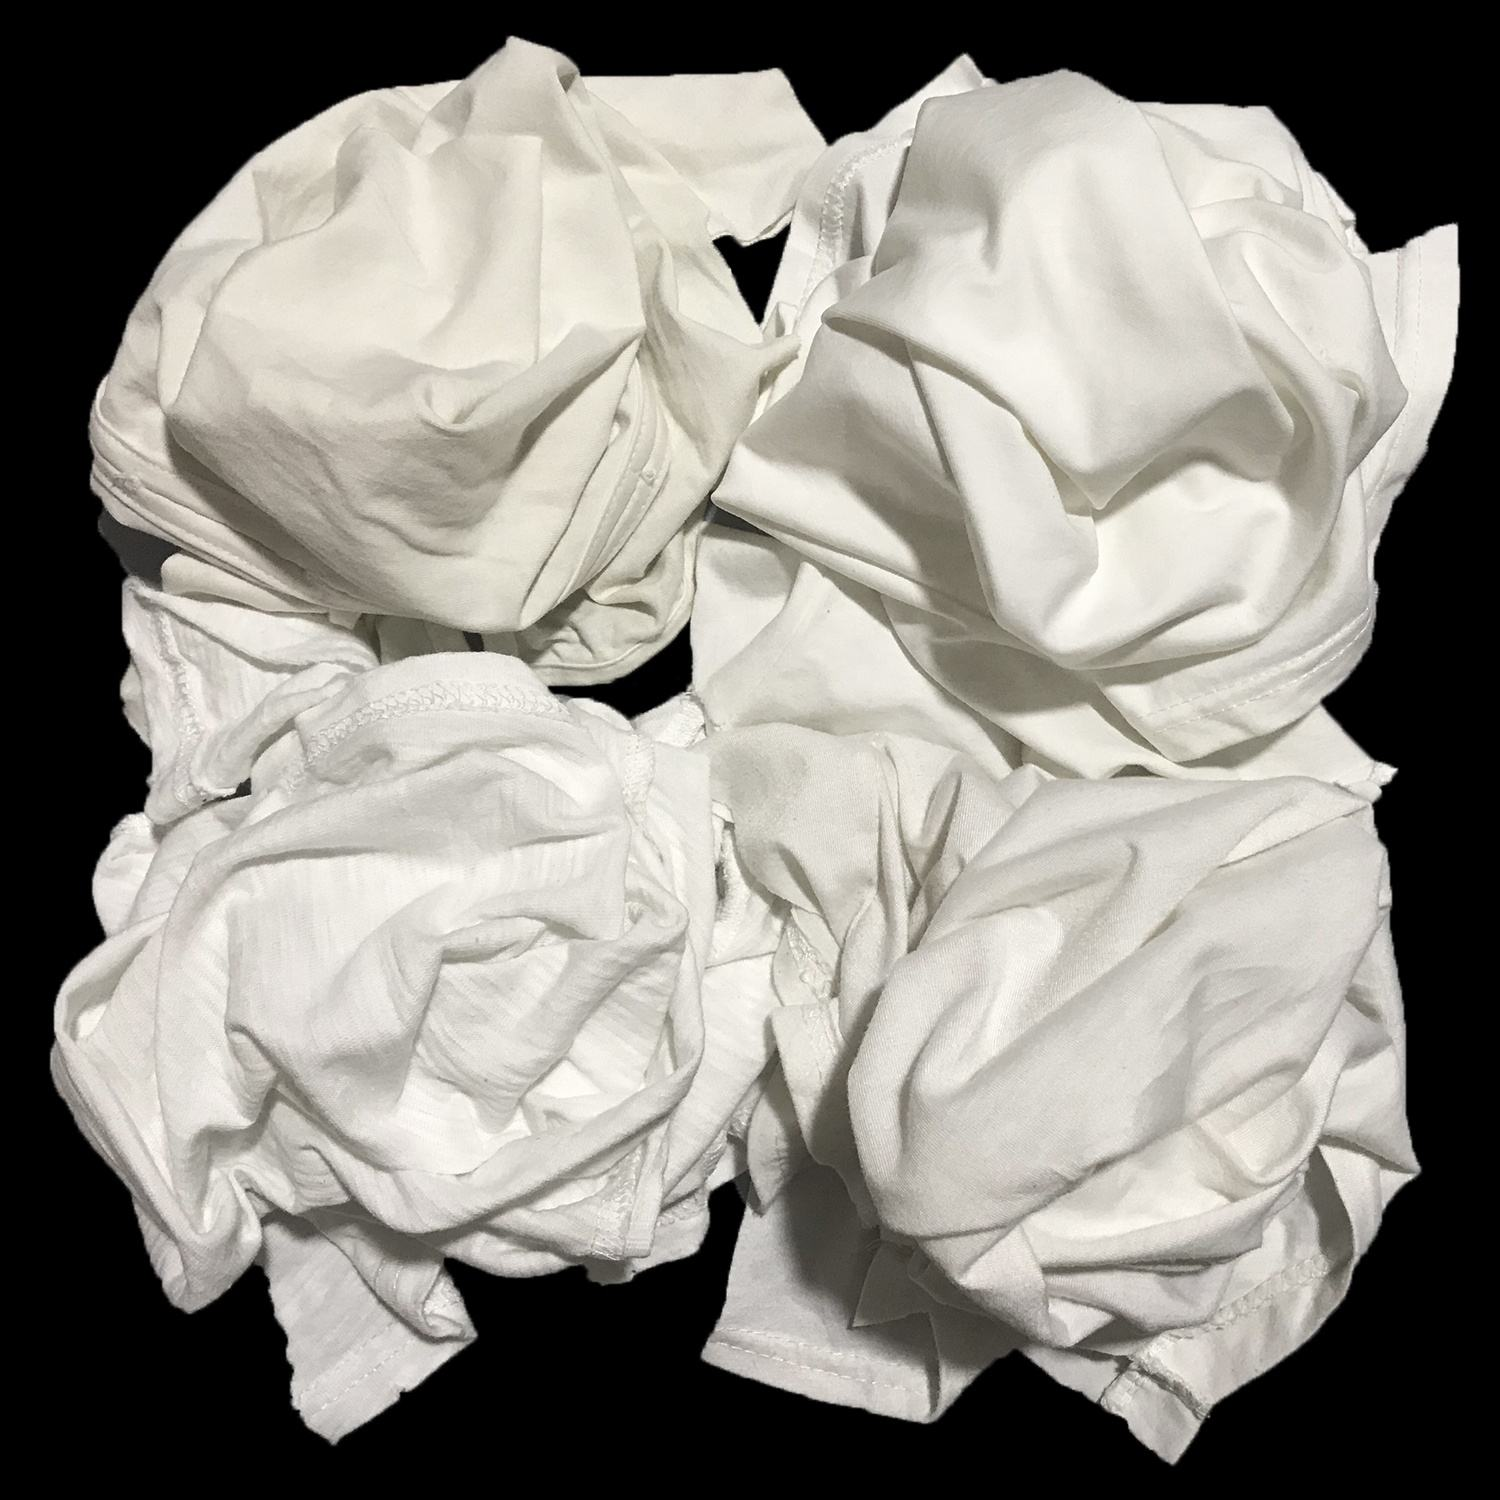 white industrial cotton wiping rags for selling in USA